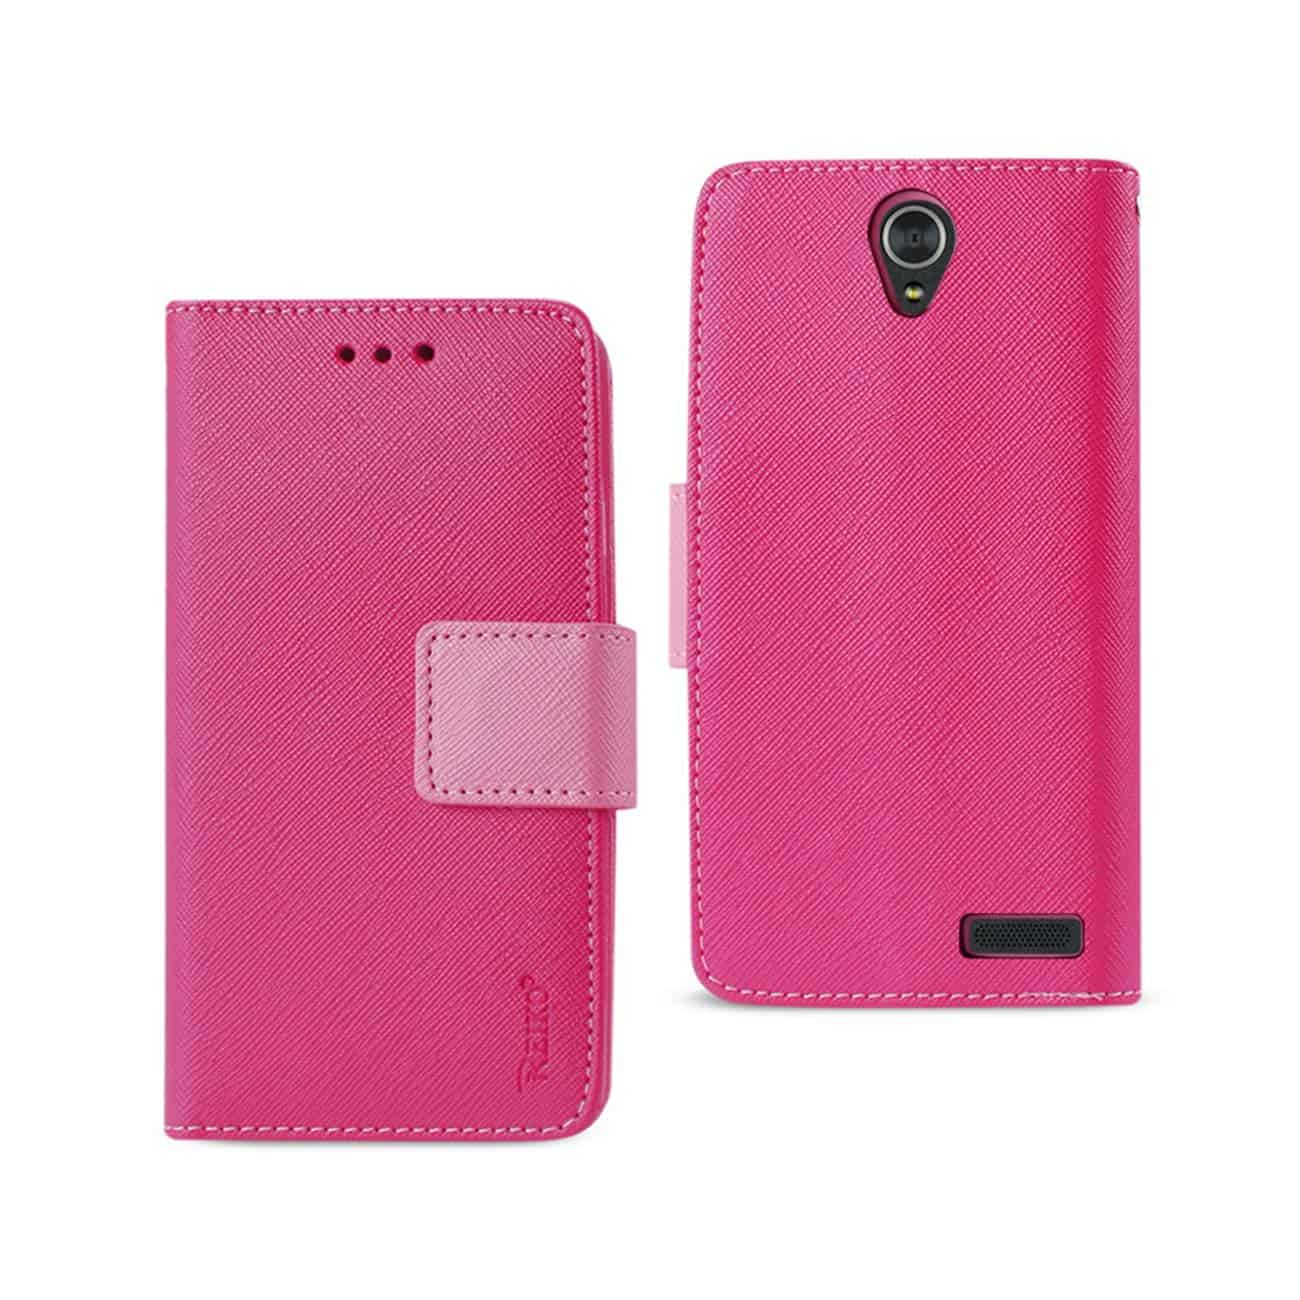 ZTE GRAND X3 WALLET CASE WITH INNER ZEBRA PRINT IN HOT PINK